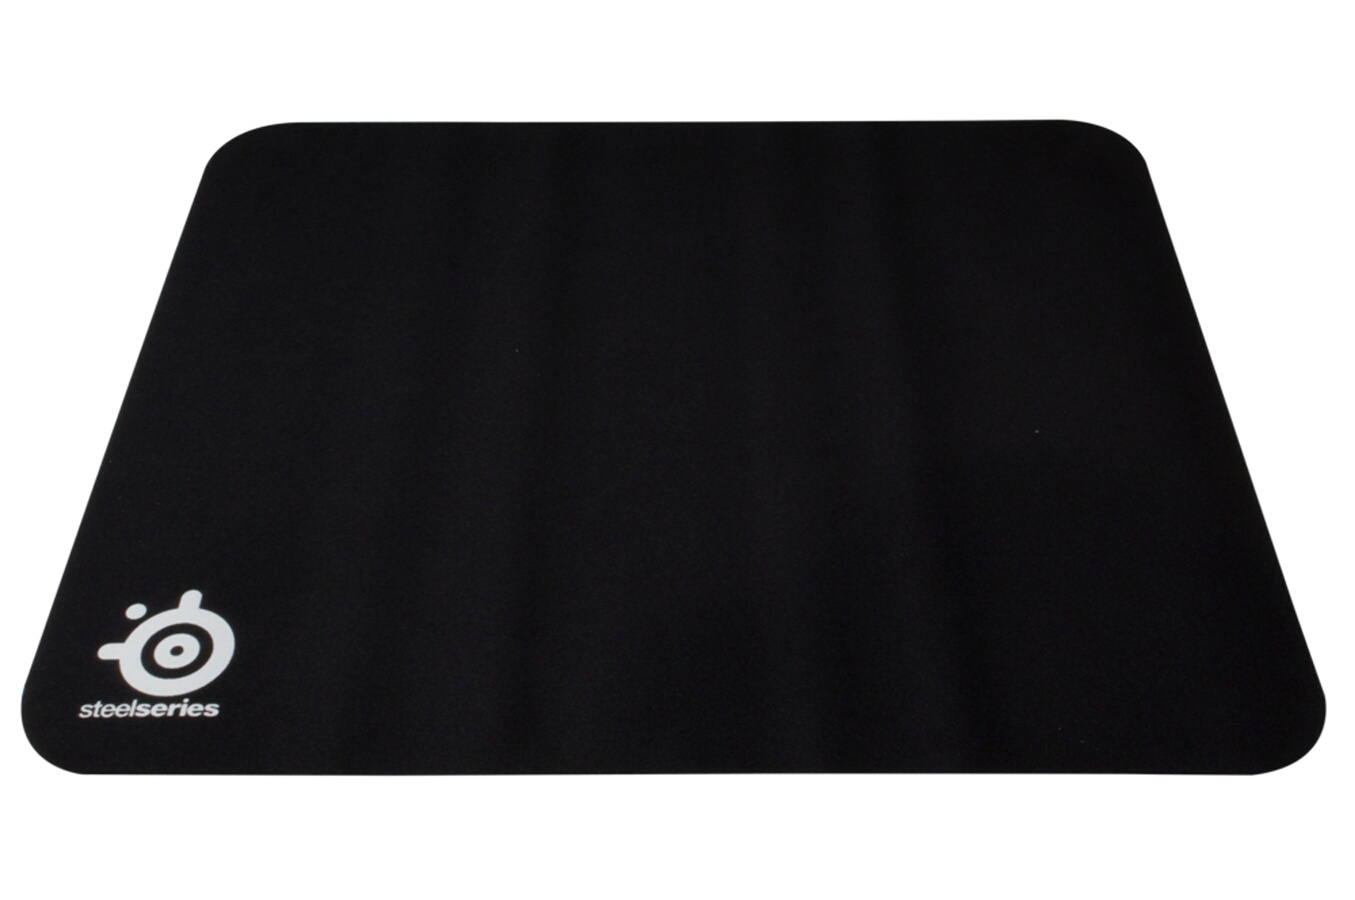 tapis de souris steelseries tapis steelseries qck. Black Bedroom Furniture Sets. Home Design Ideas